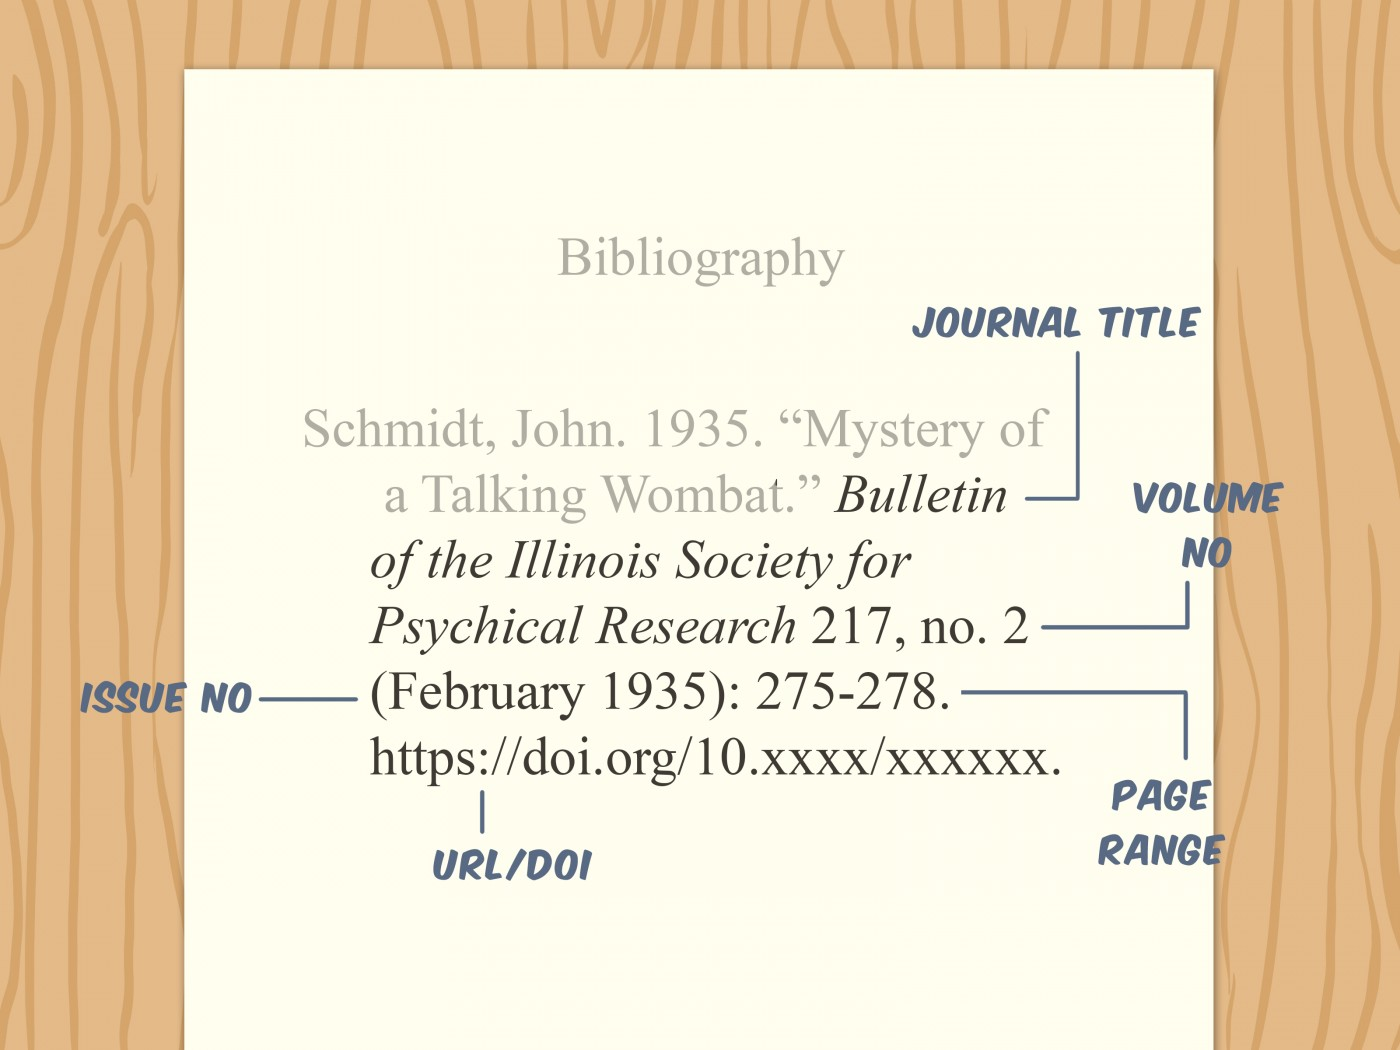 018 Citing Research Paper Chicago Style Cite Sources In Manual Of Format Step Version Remarkable 1400